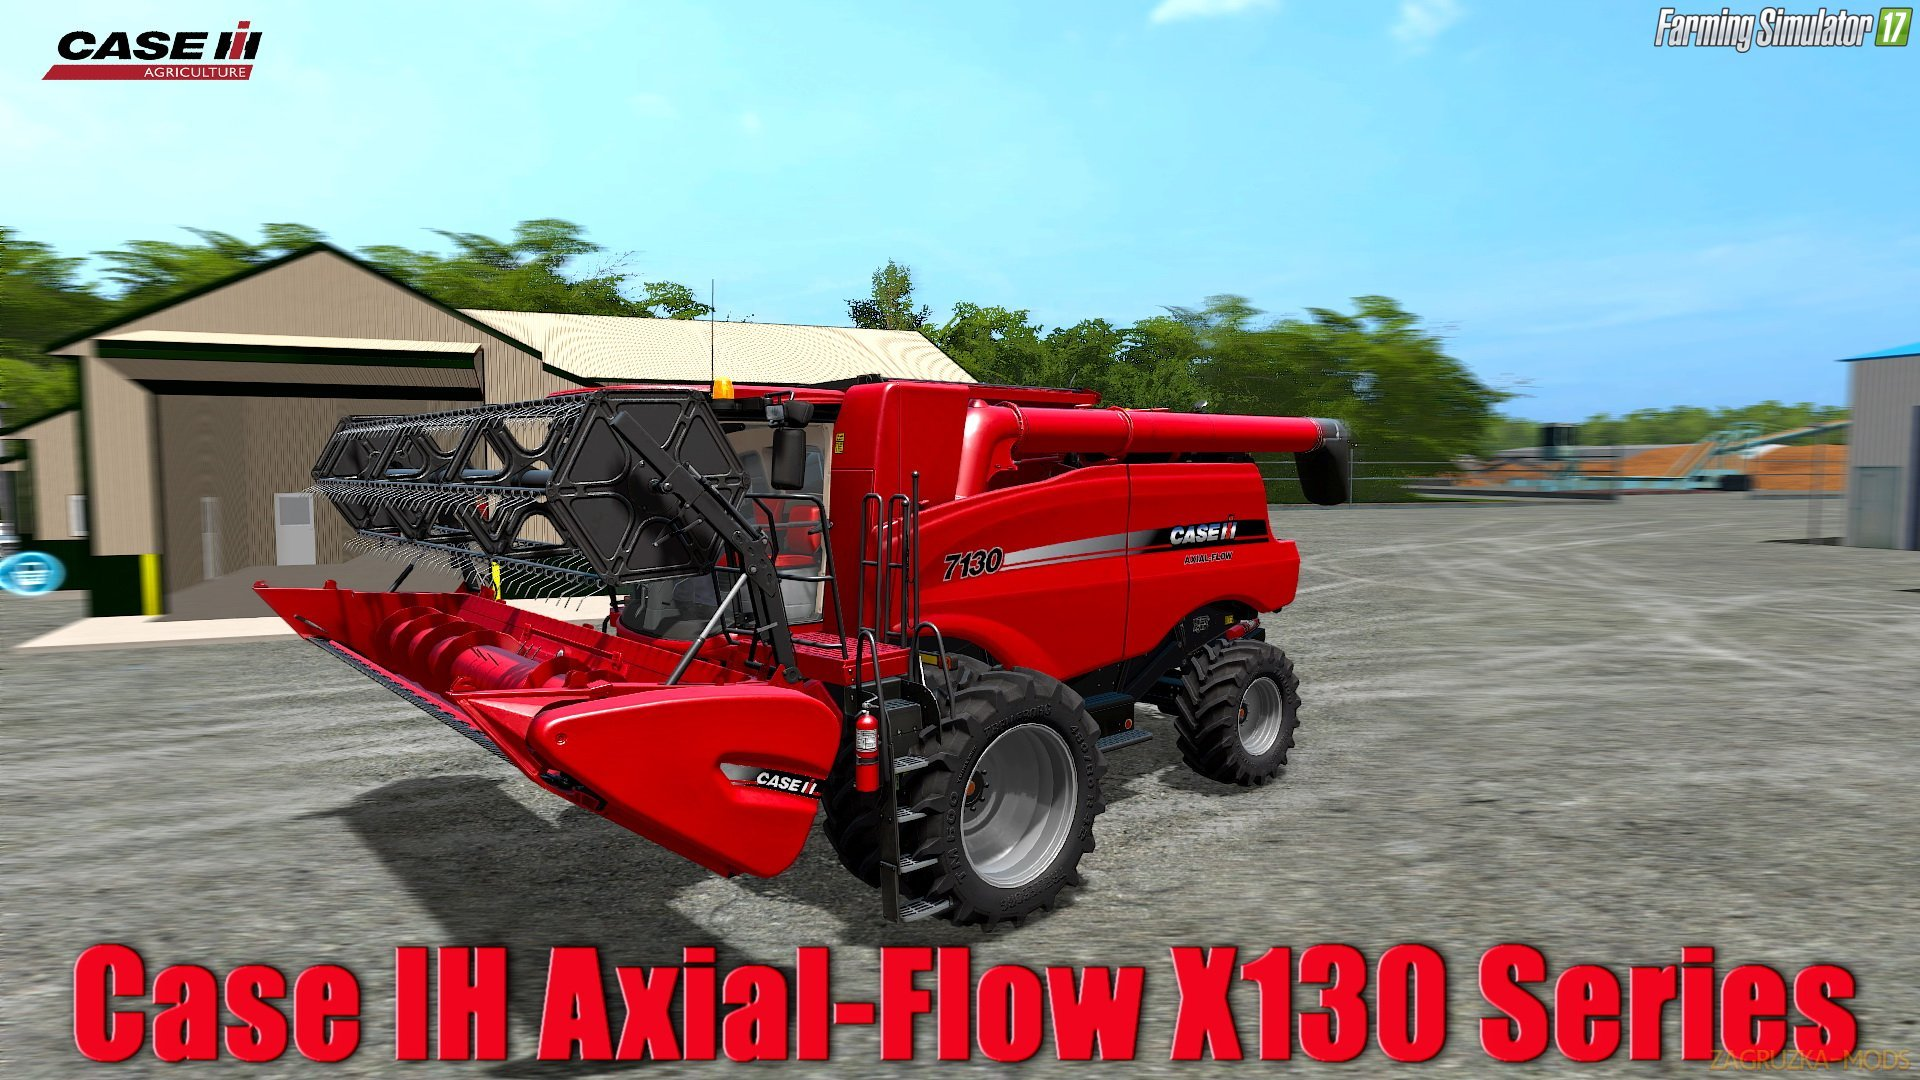 Case IH Axial-Flow X130 Series v1.0 for FS 17